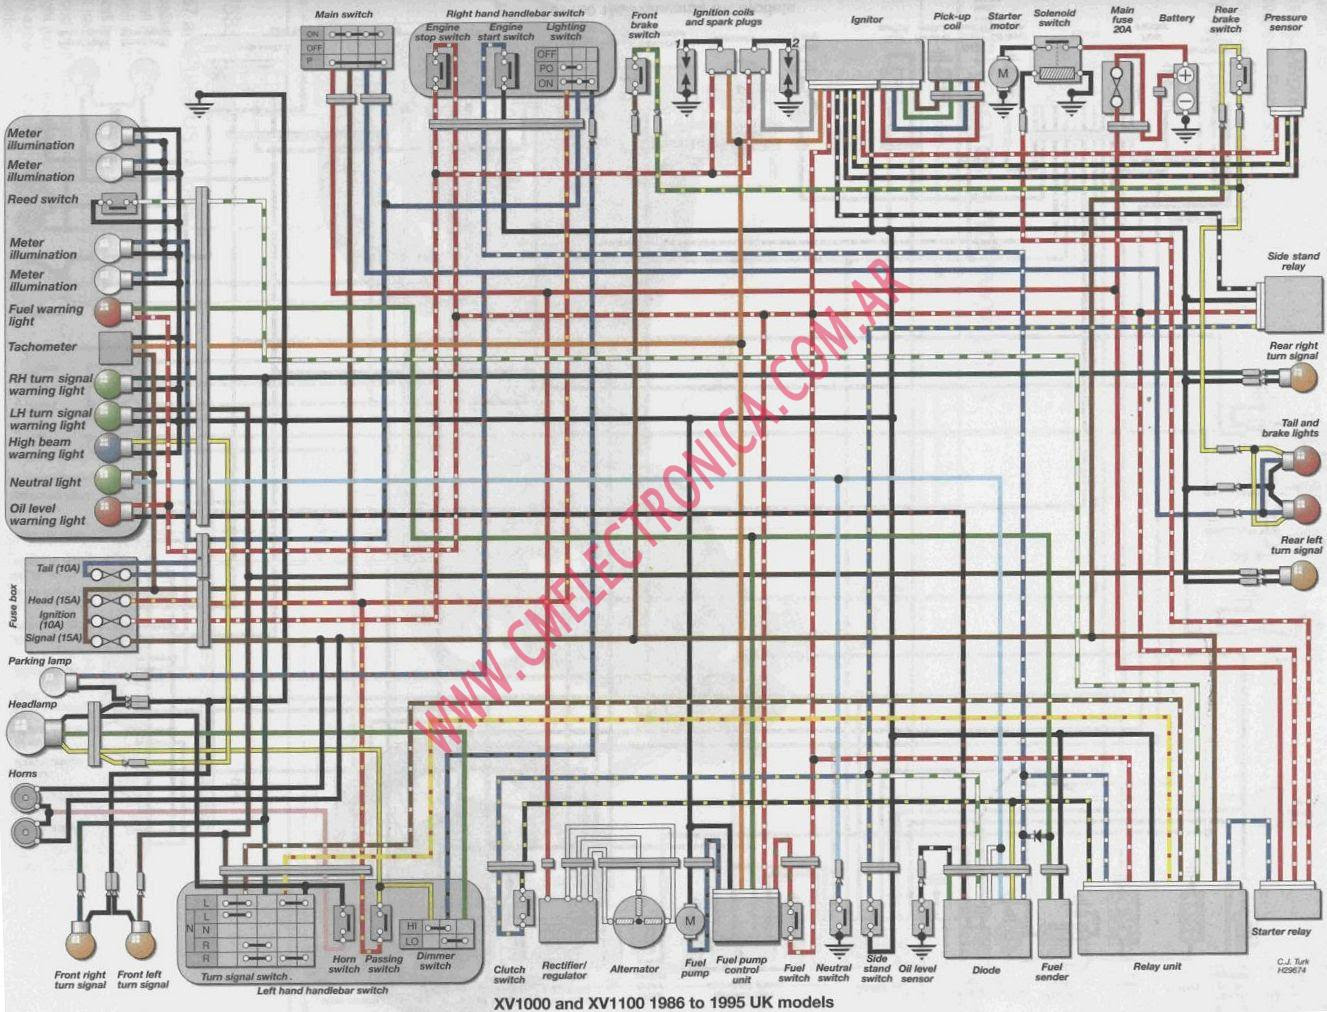 1995 Yamaha Wiring Diagram Wiring Diagram Effective A Effective A Bowlingronta It